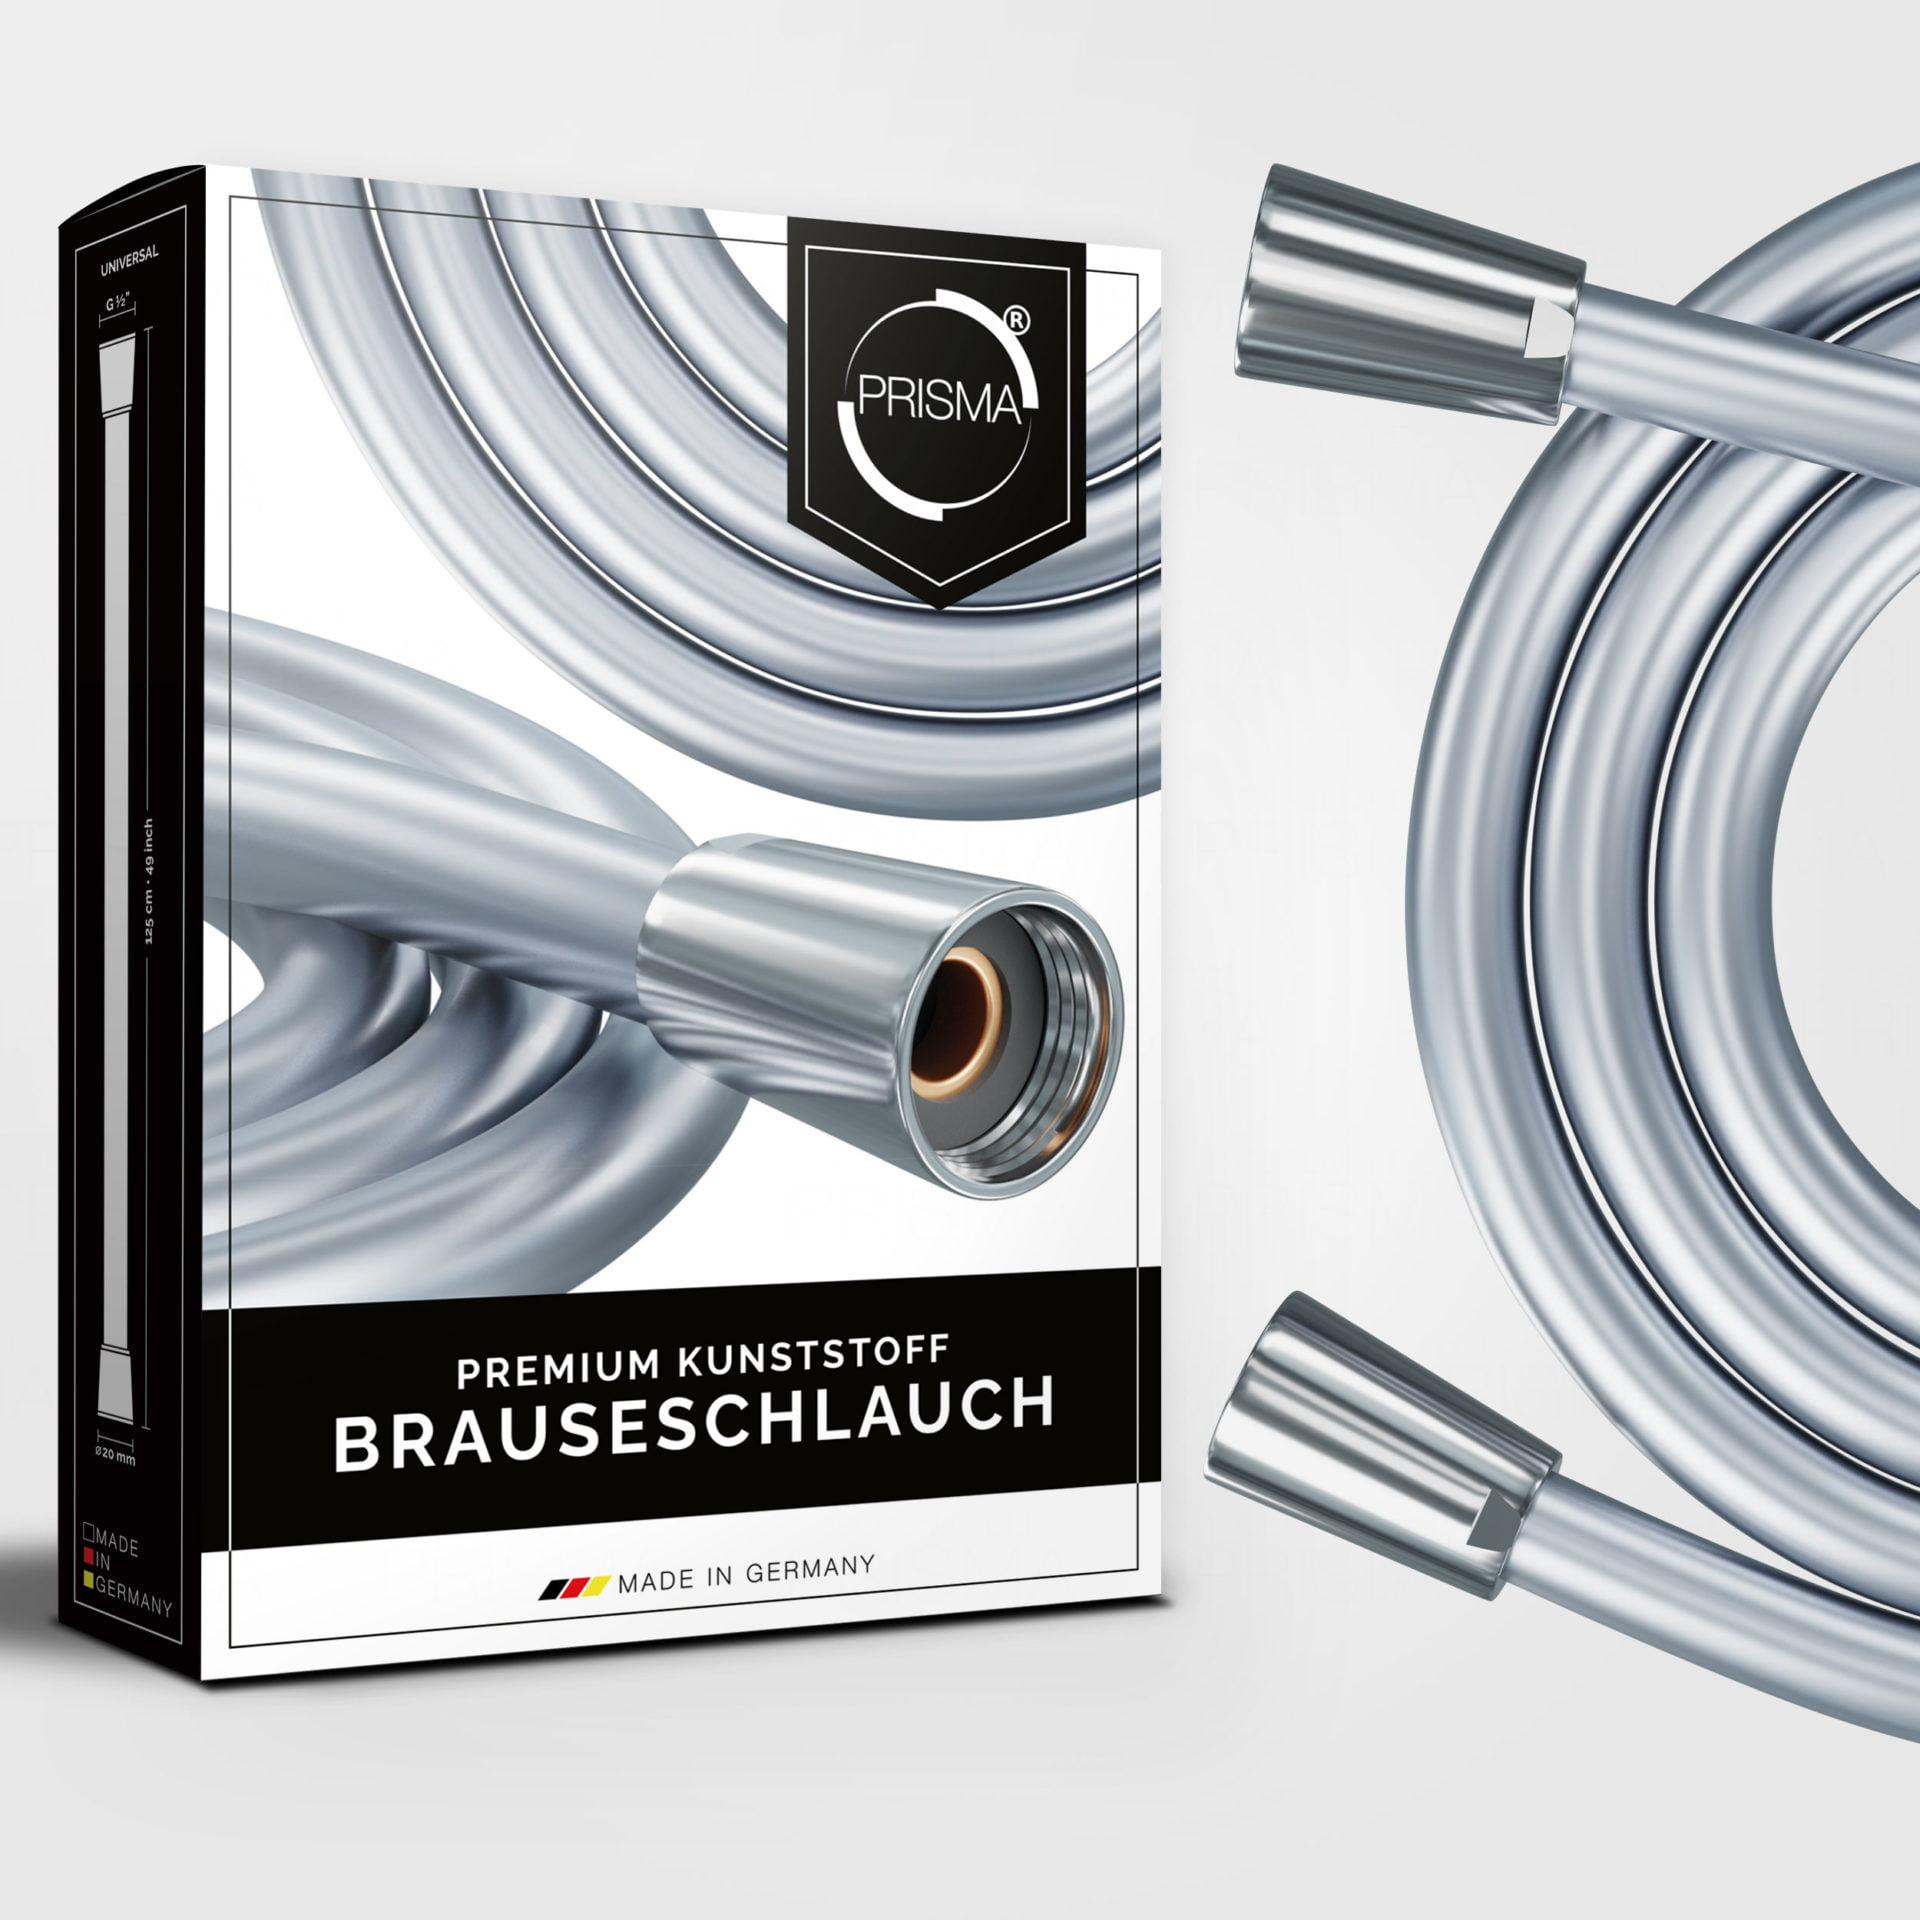 3964 Product - PRISMA Brauseschlauch aus Kunststoff • Made In Germany